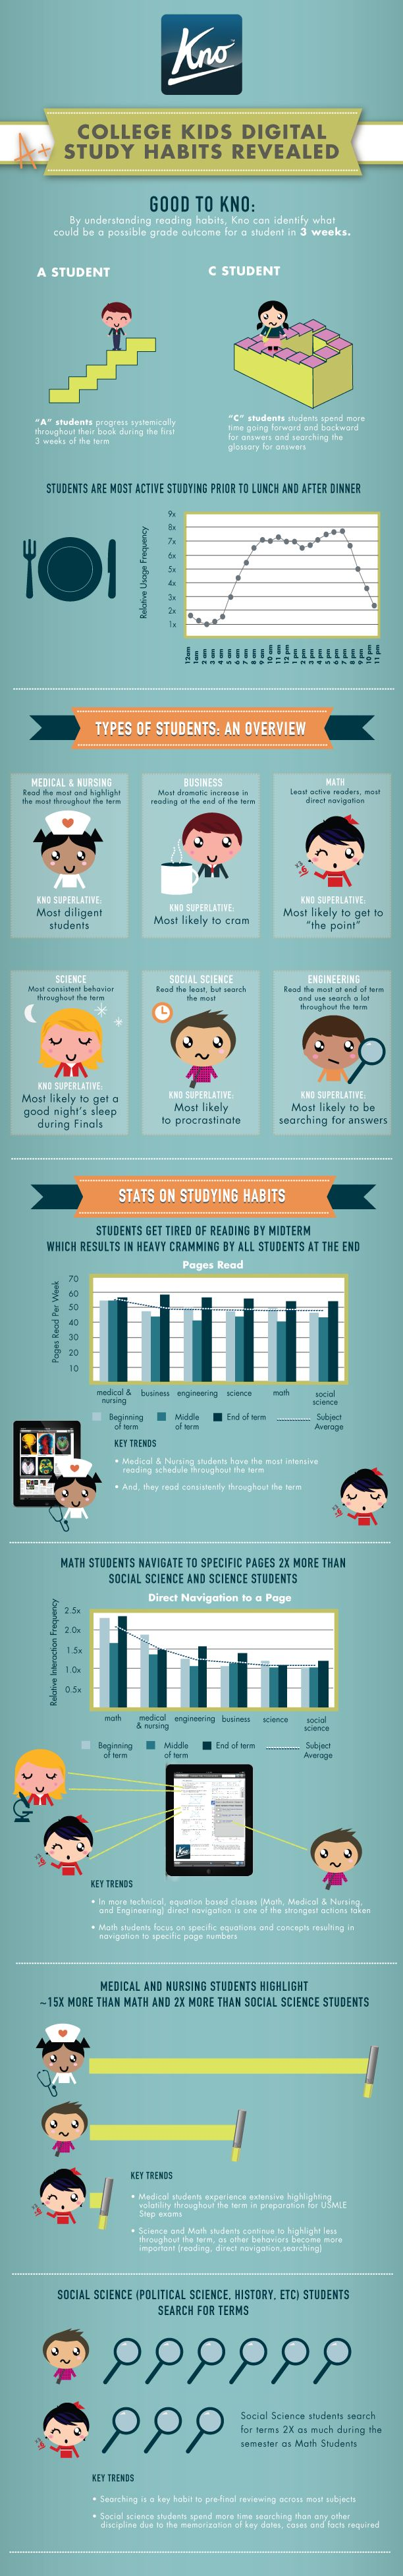 Study Habits That Can Improve Grades and Performance